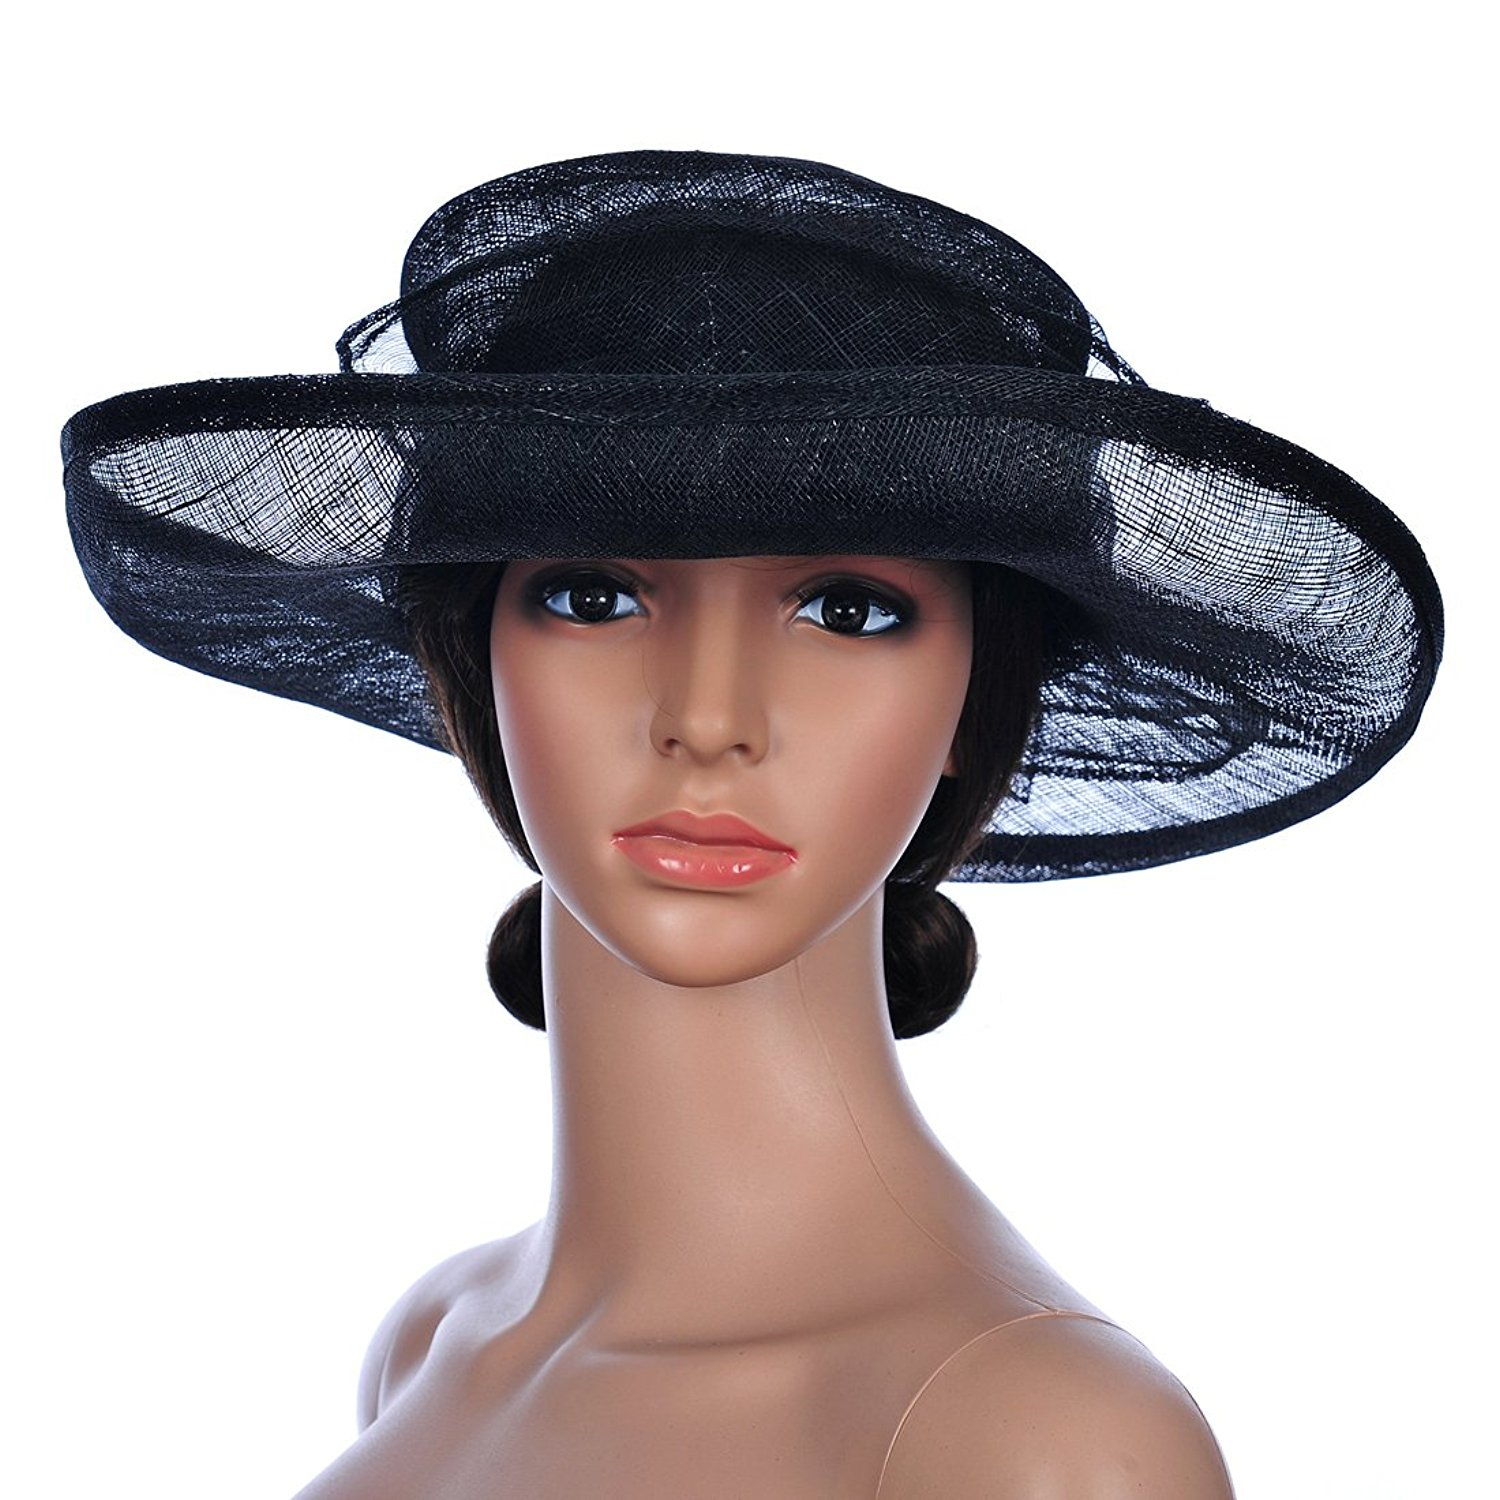 ef21c3552c23b6 Get Quotations · Remedios Kentucky Derby Hats Church Hats Wide Brim Sinamay  Hat Women Formal Dress Cap